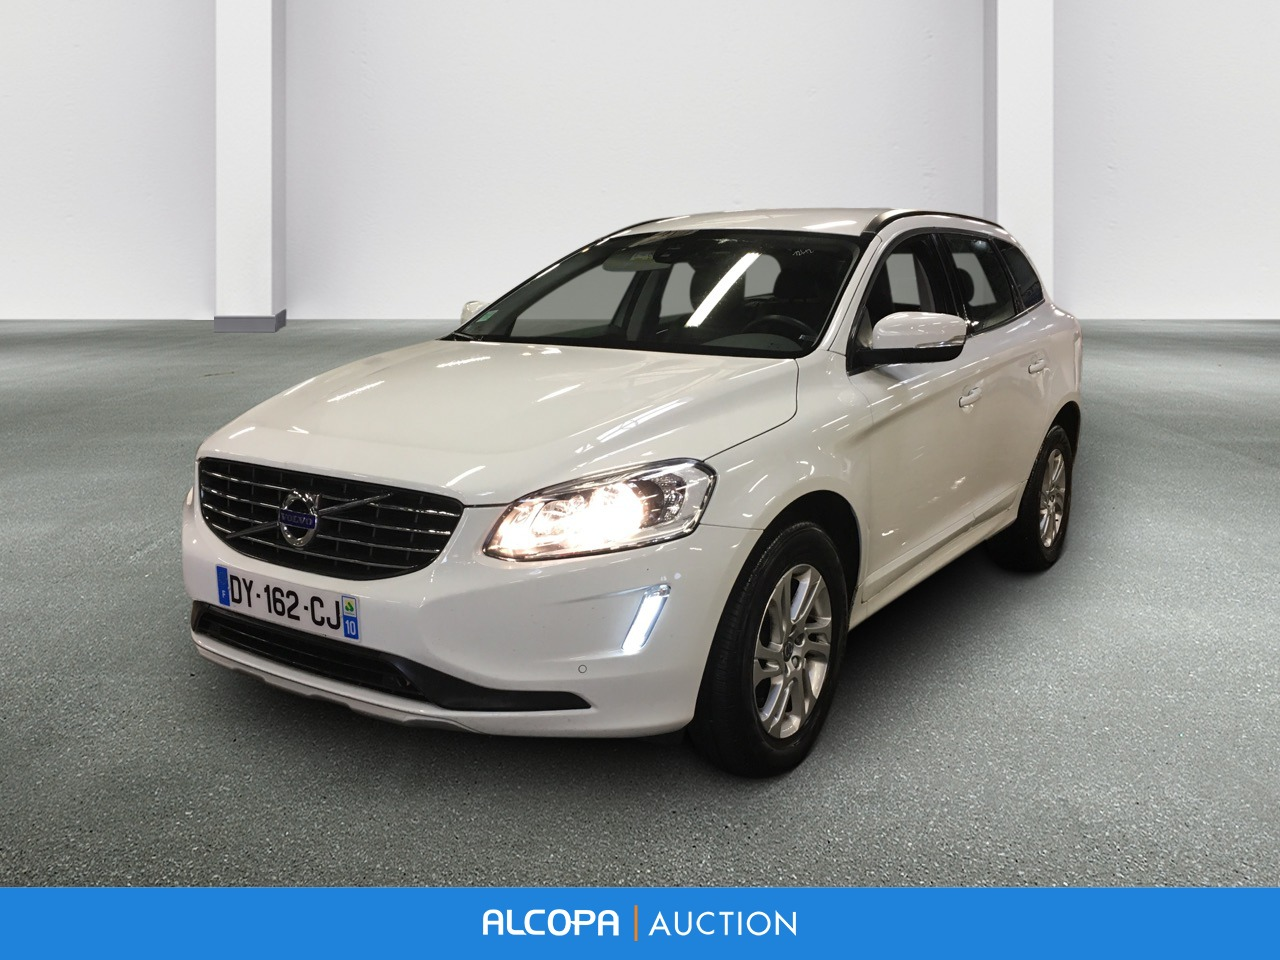 volvo xc60 business xc60 business d4 awd 190 ch s s momentum business alcopa auction. Black Bedroom Furniture Sets. Home Design Ideas